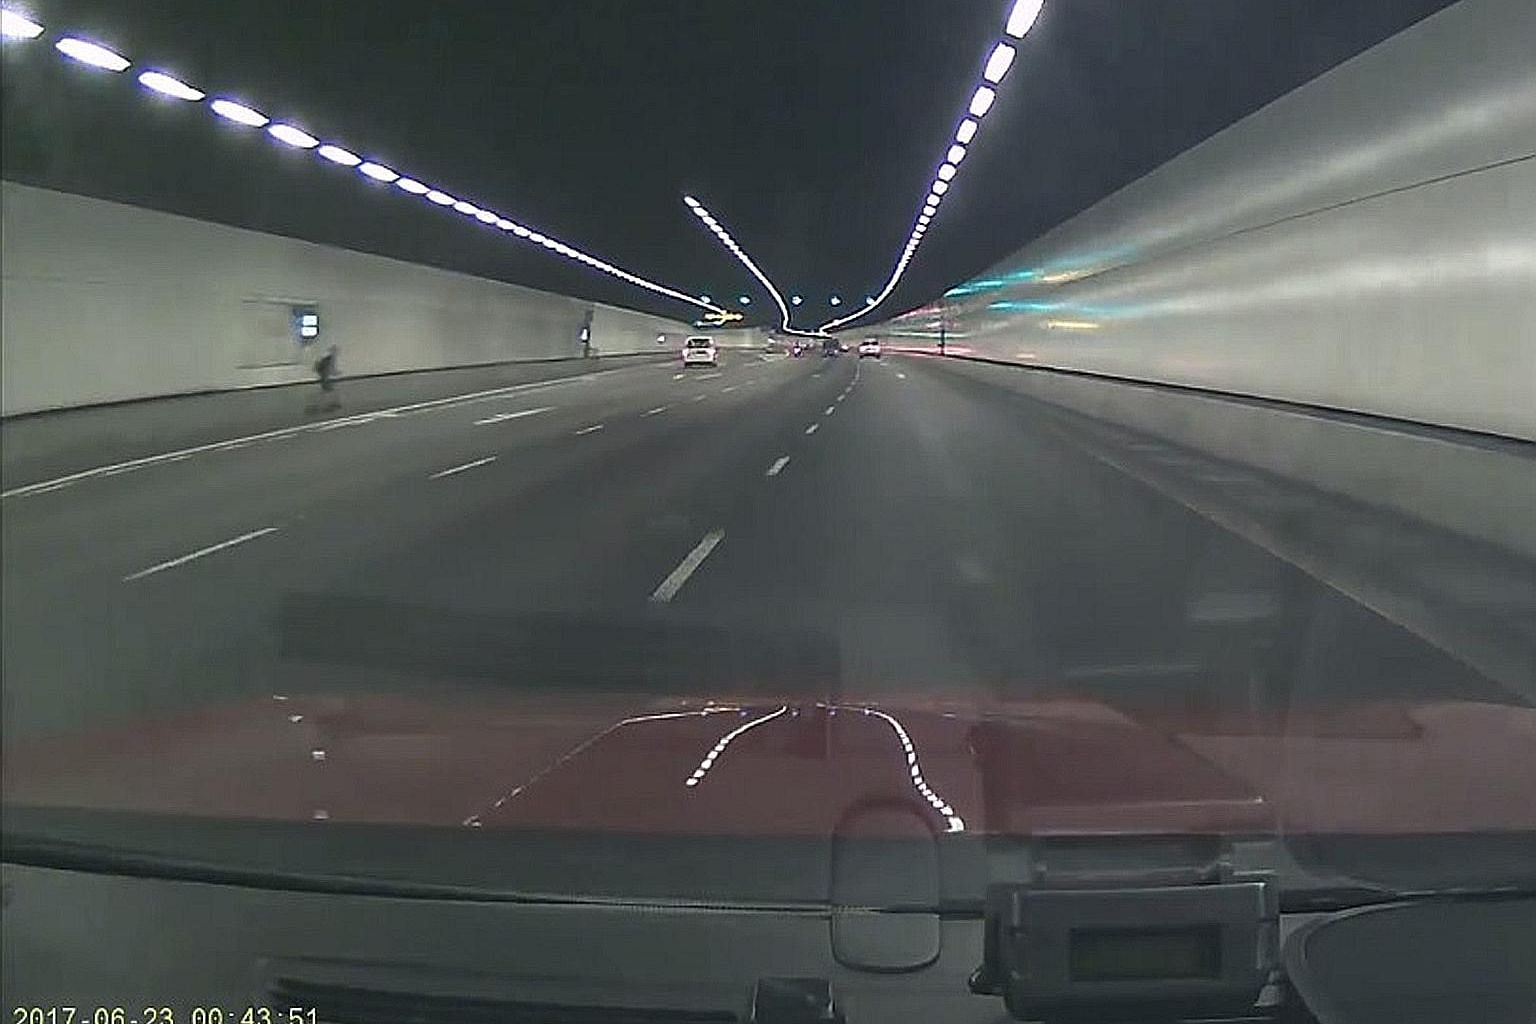 A video uploaded on the Roads.sg Facebook page shows a person riding an electric scooter along the road shoulder of a Kallang-Paya Lebar Expressway tunnel early last Friday morning.